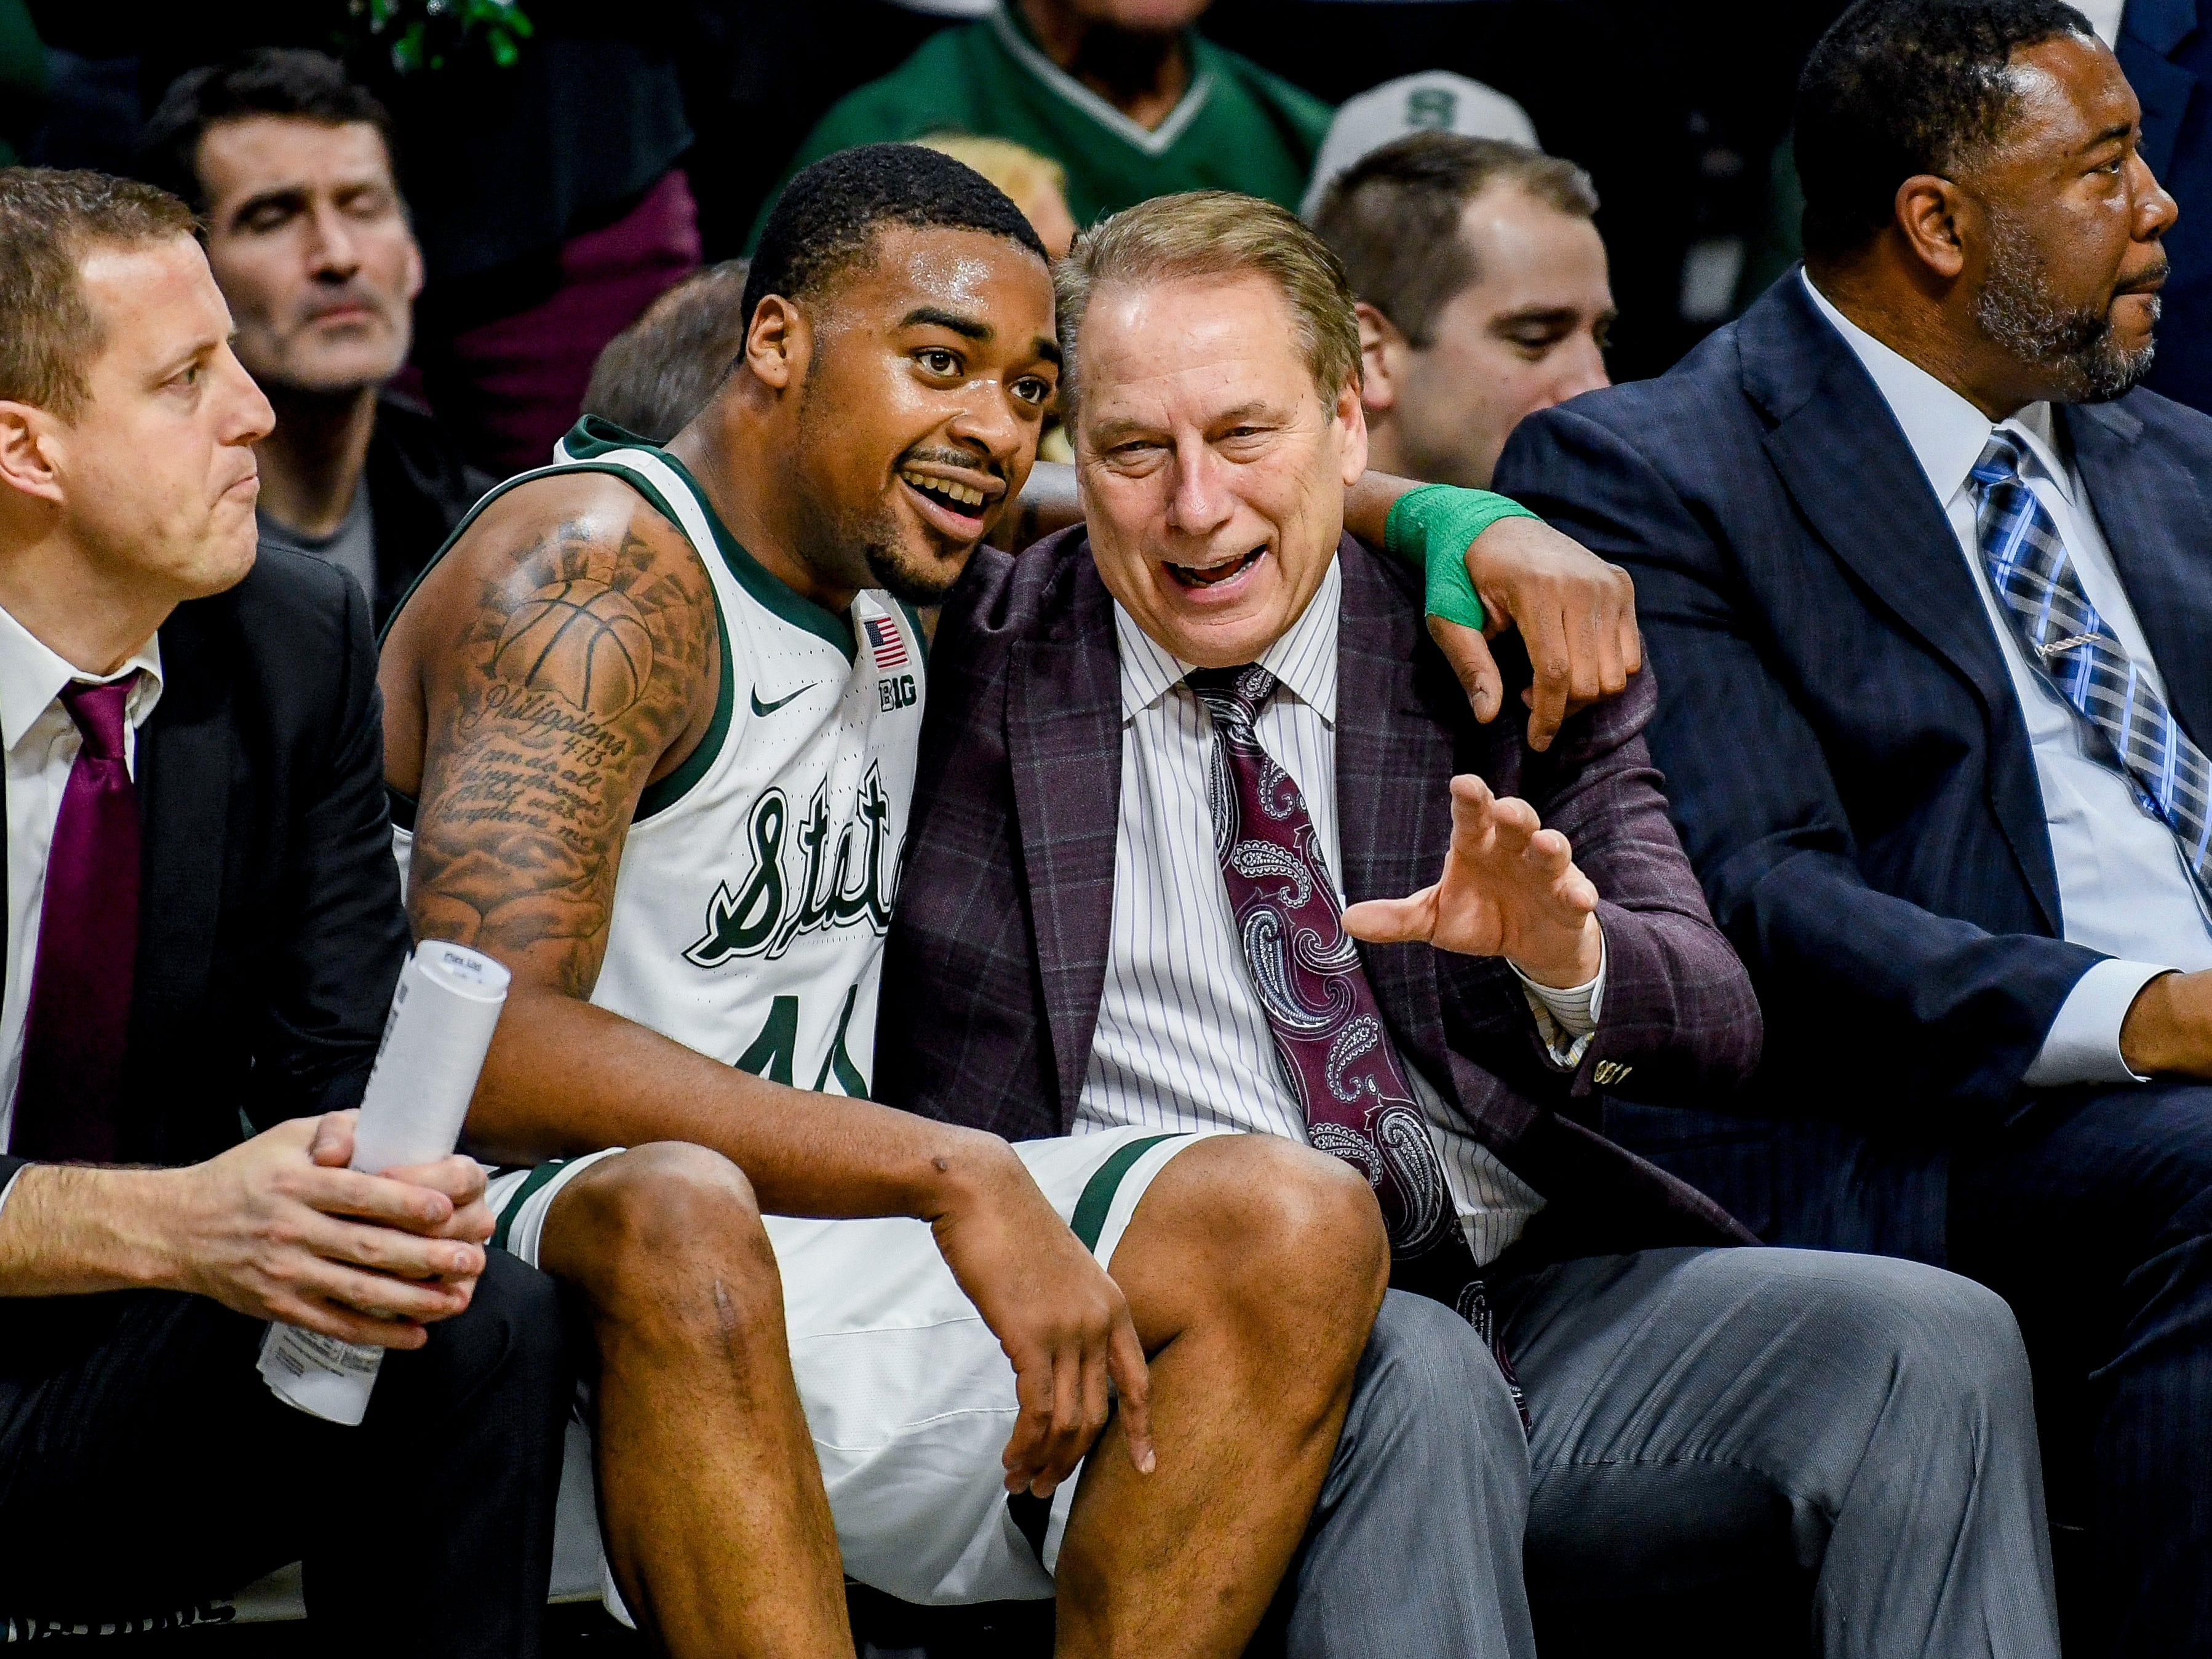 Michigan State's head coach Tom Izzo, right, talks with Nick Ward on the bench during the second half on Monday, Dec. 3, 2018, at the Breslin Center in East Lansing. Michigan State beat Iowa 90-68.